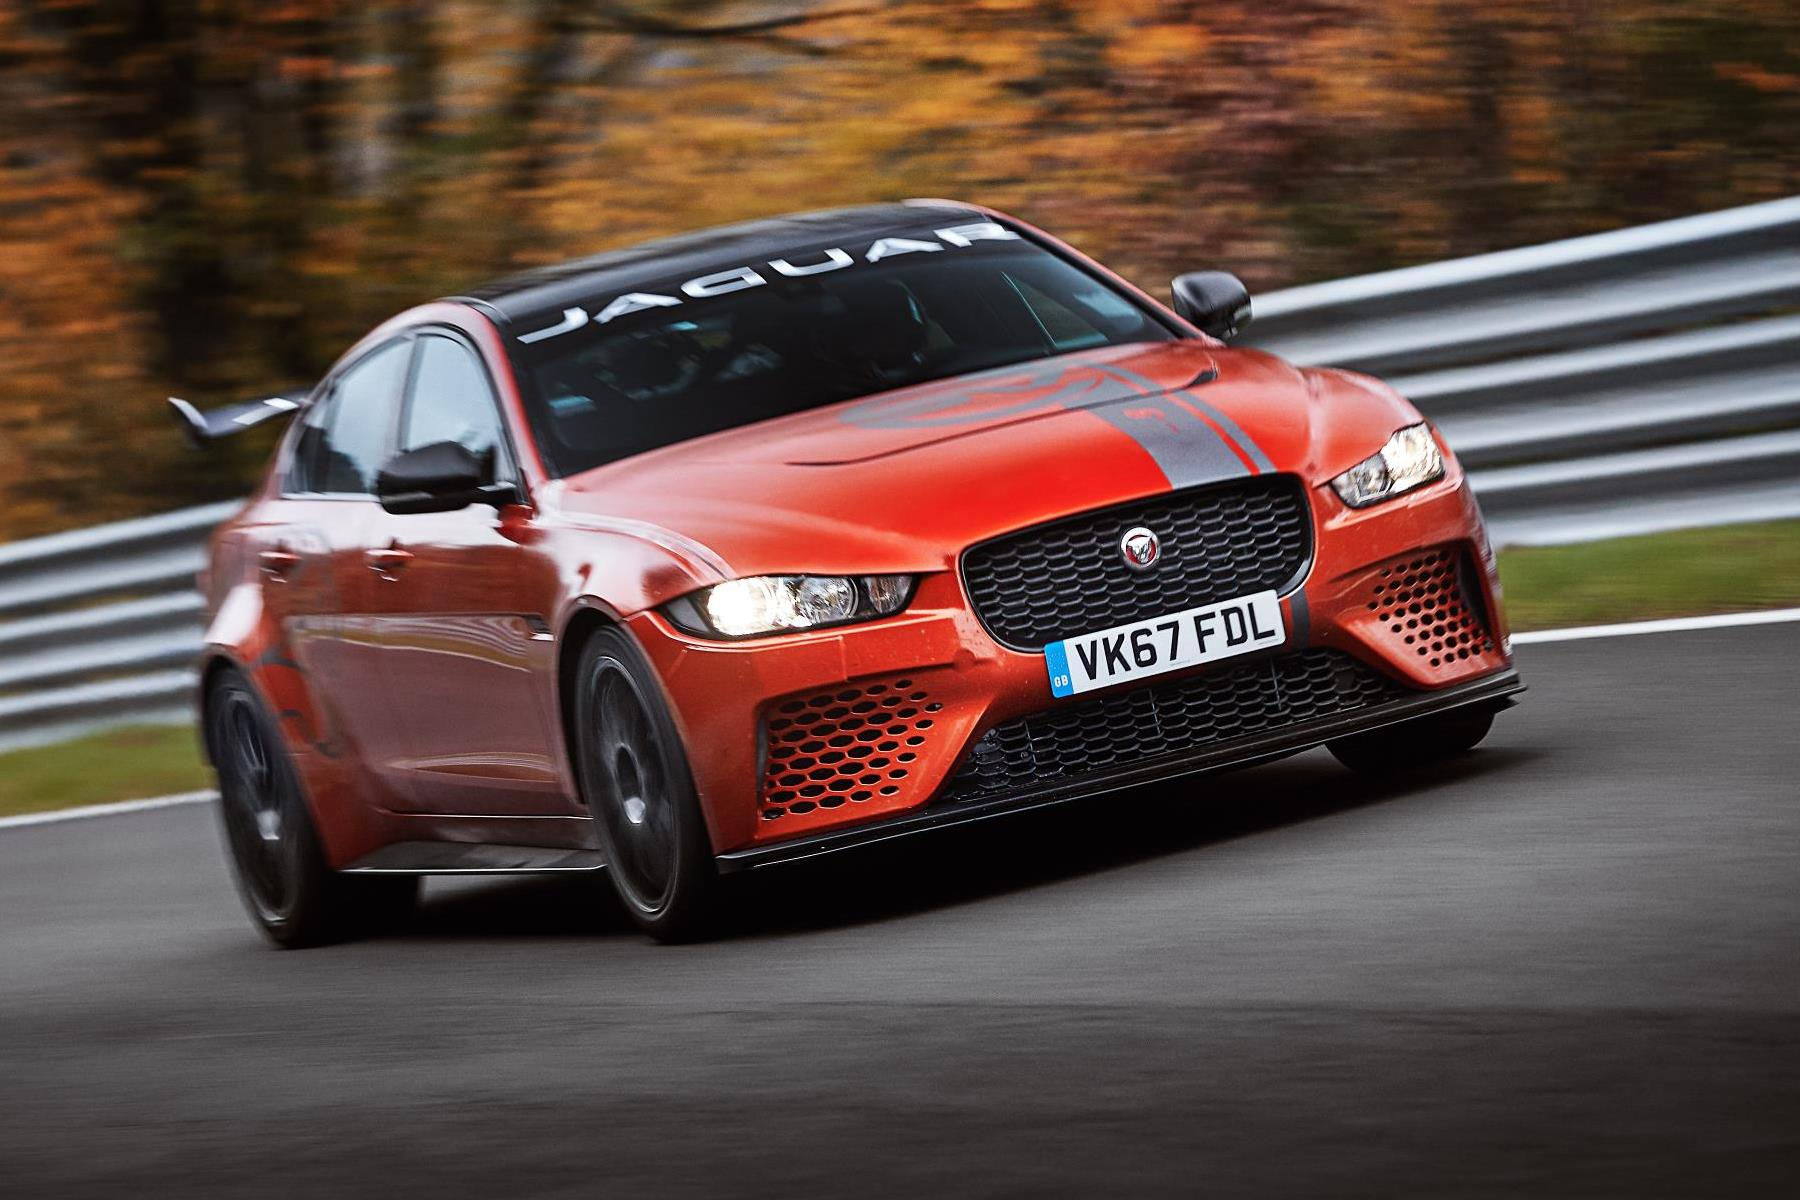 Jaguar XE SV Project 8 breaks Nurburgring four-door auto record